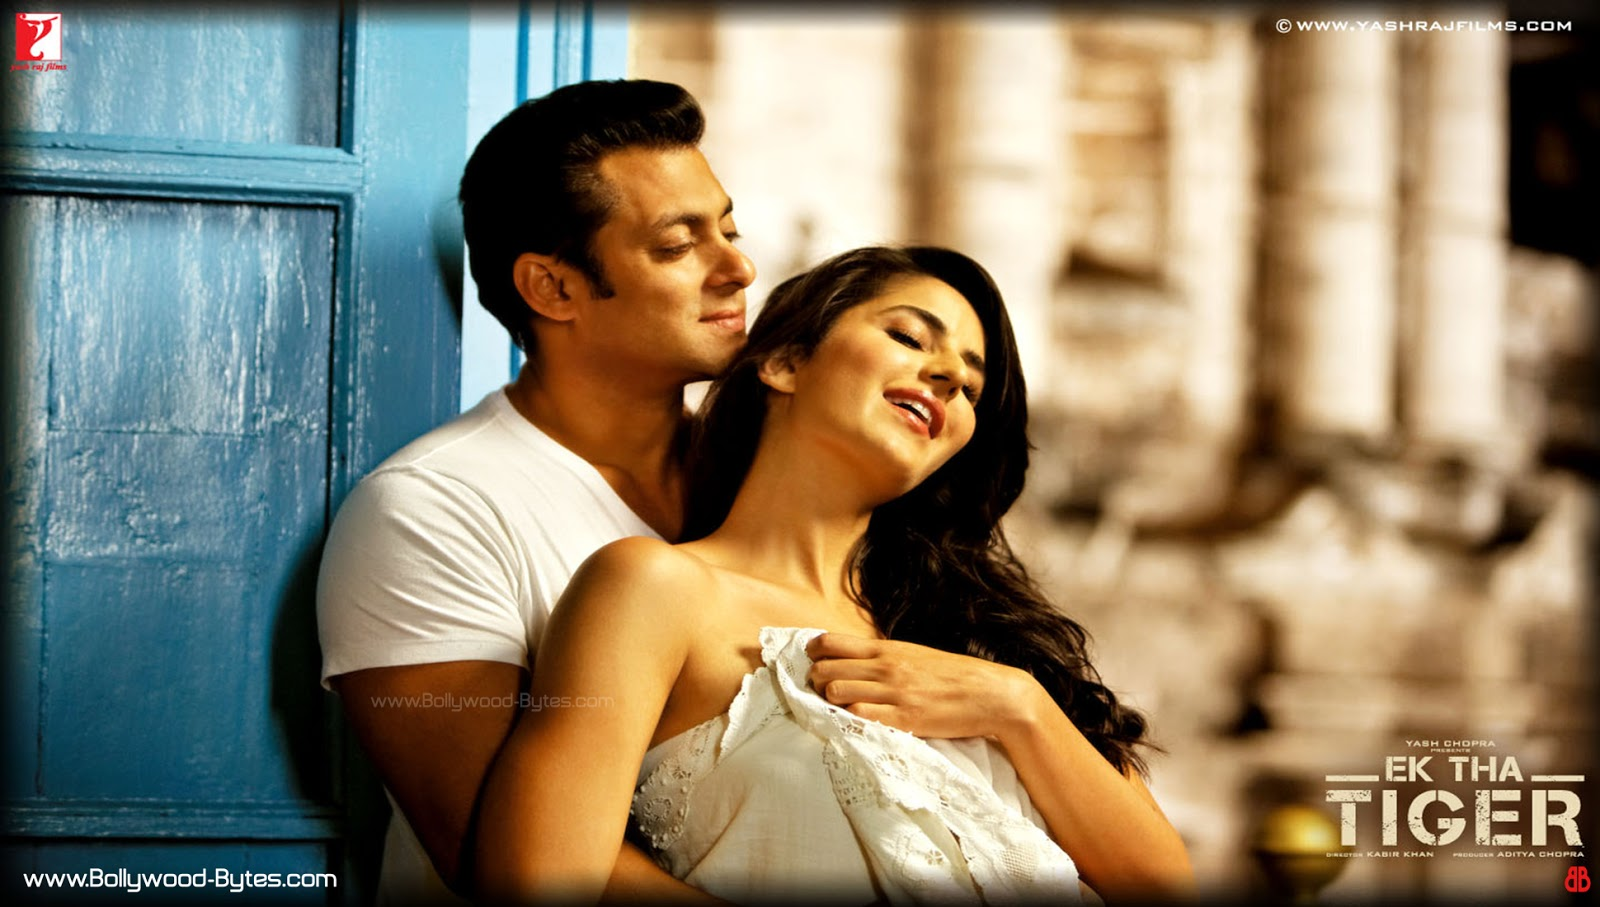 Salman Khan With Katrina Kaif in Ek Tha Tiger Movie Wallpaper